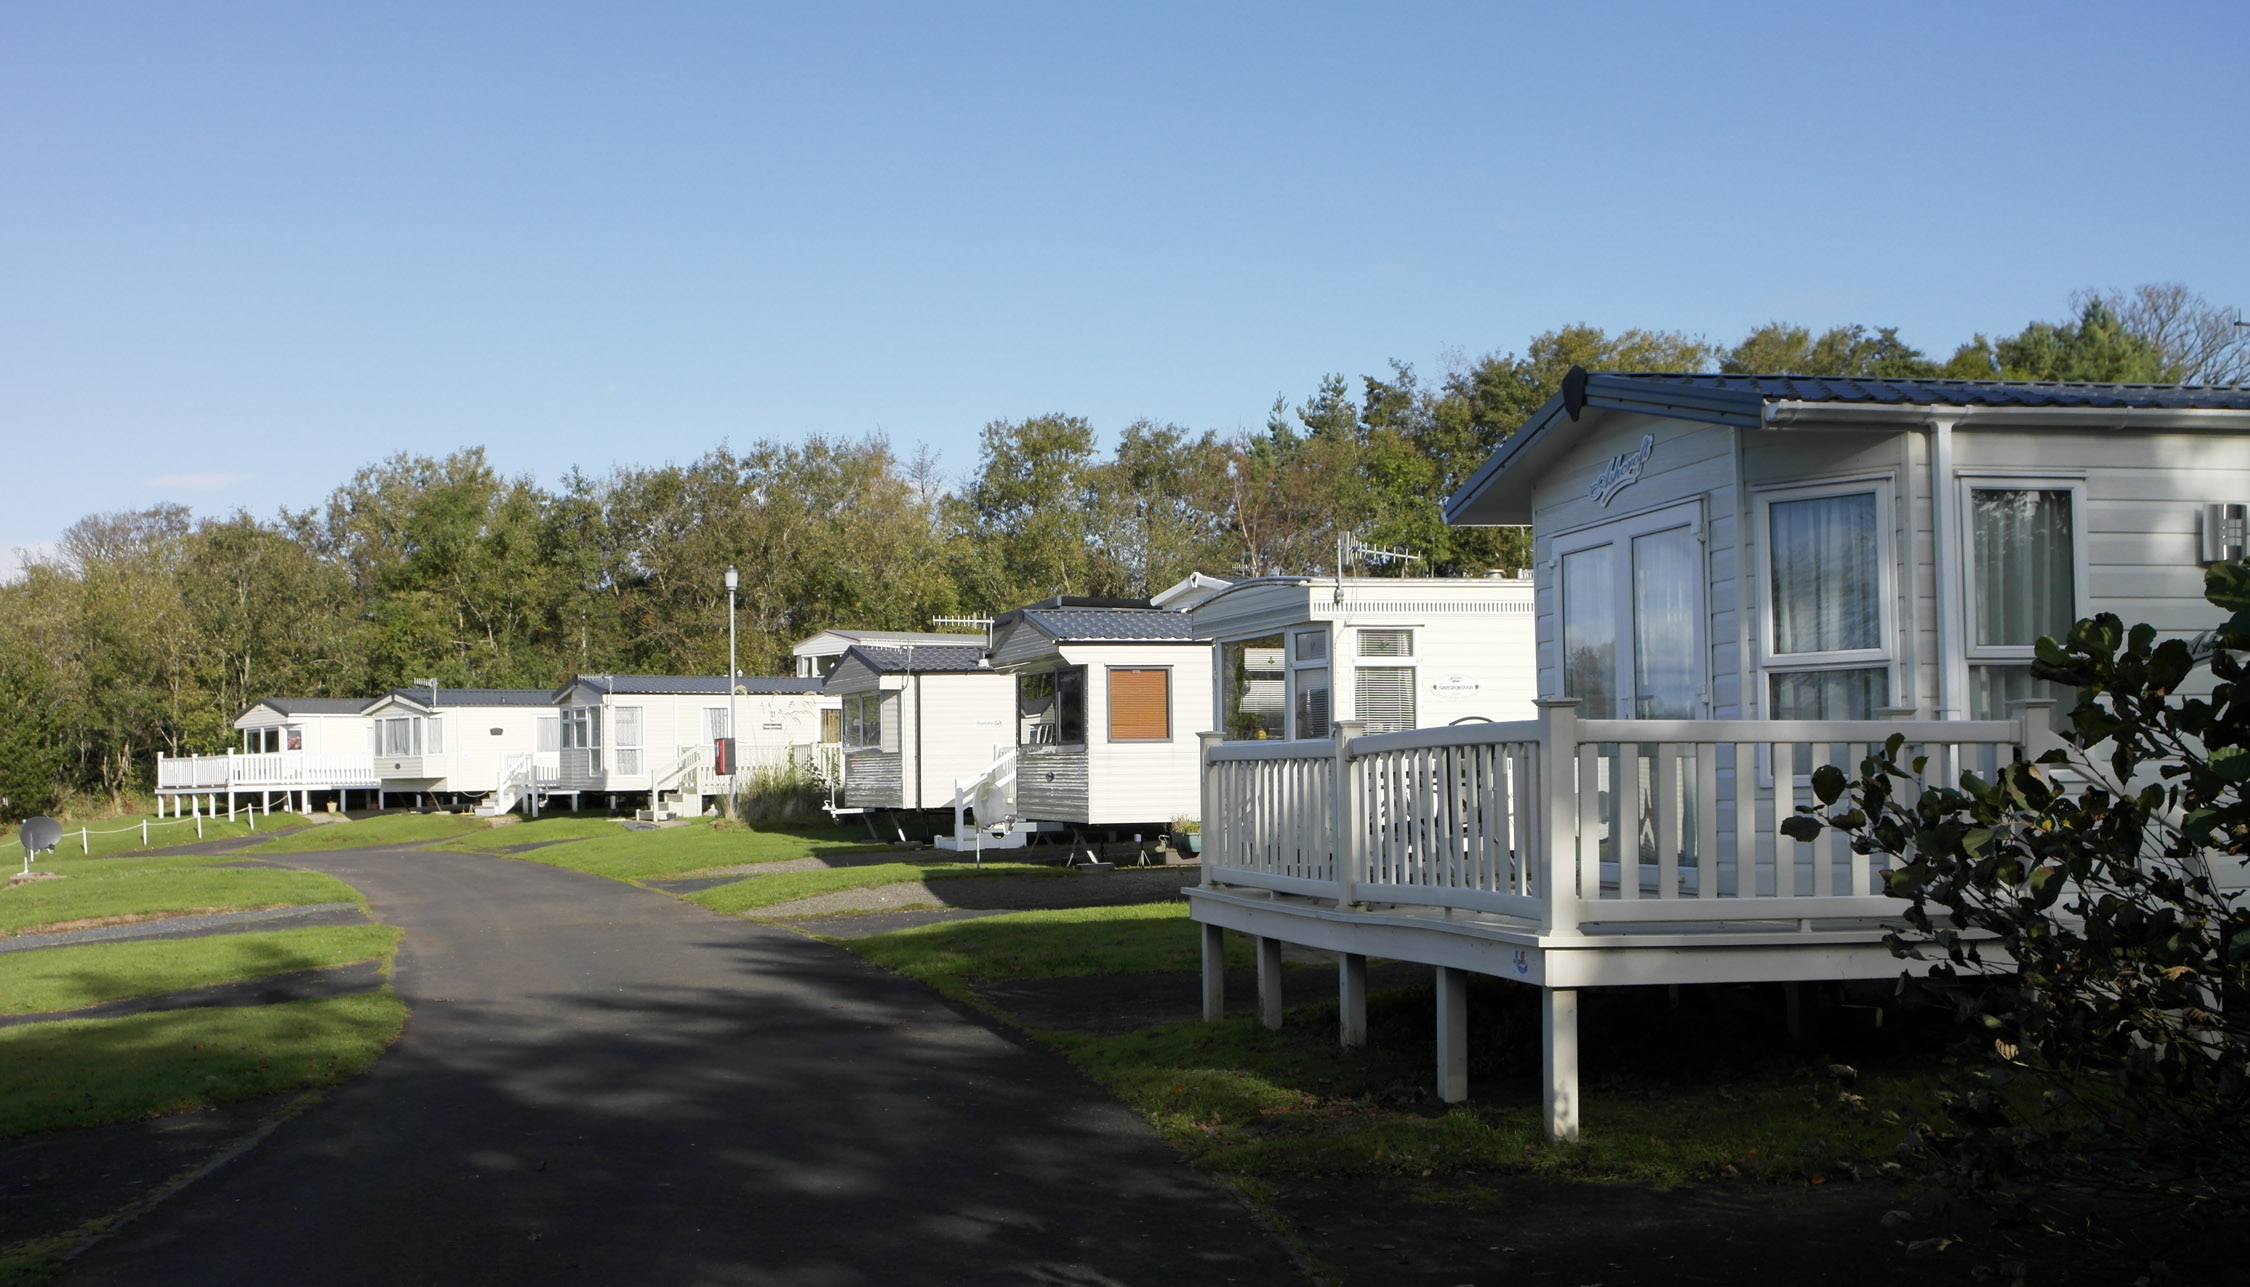 Caravan Holidays - at Wemyss Bay Holiday Park